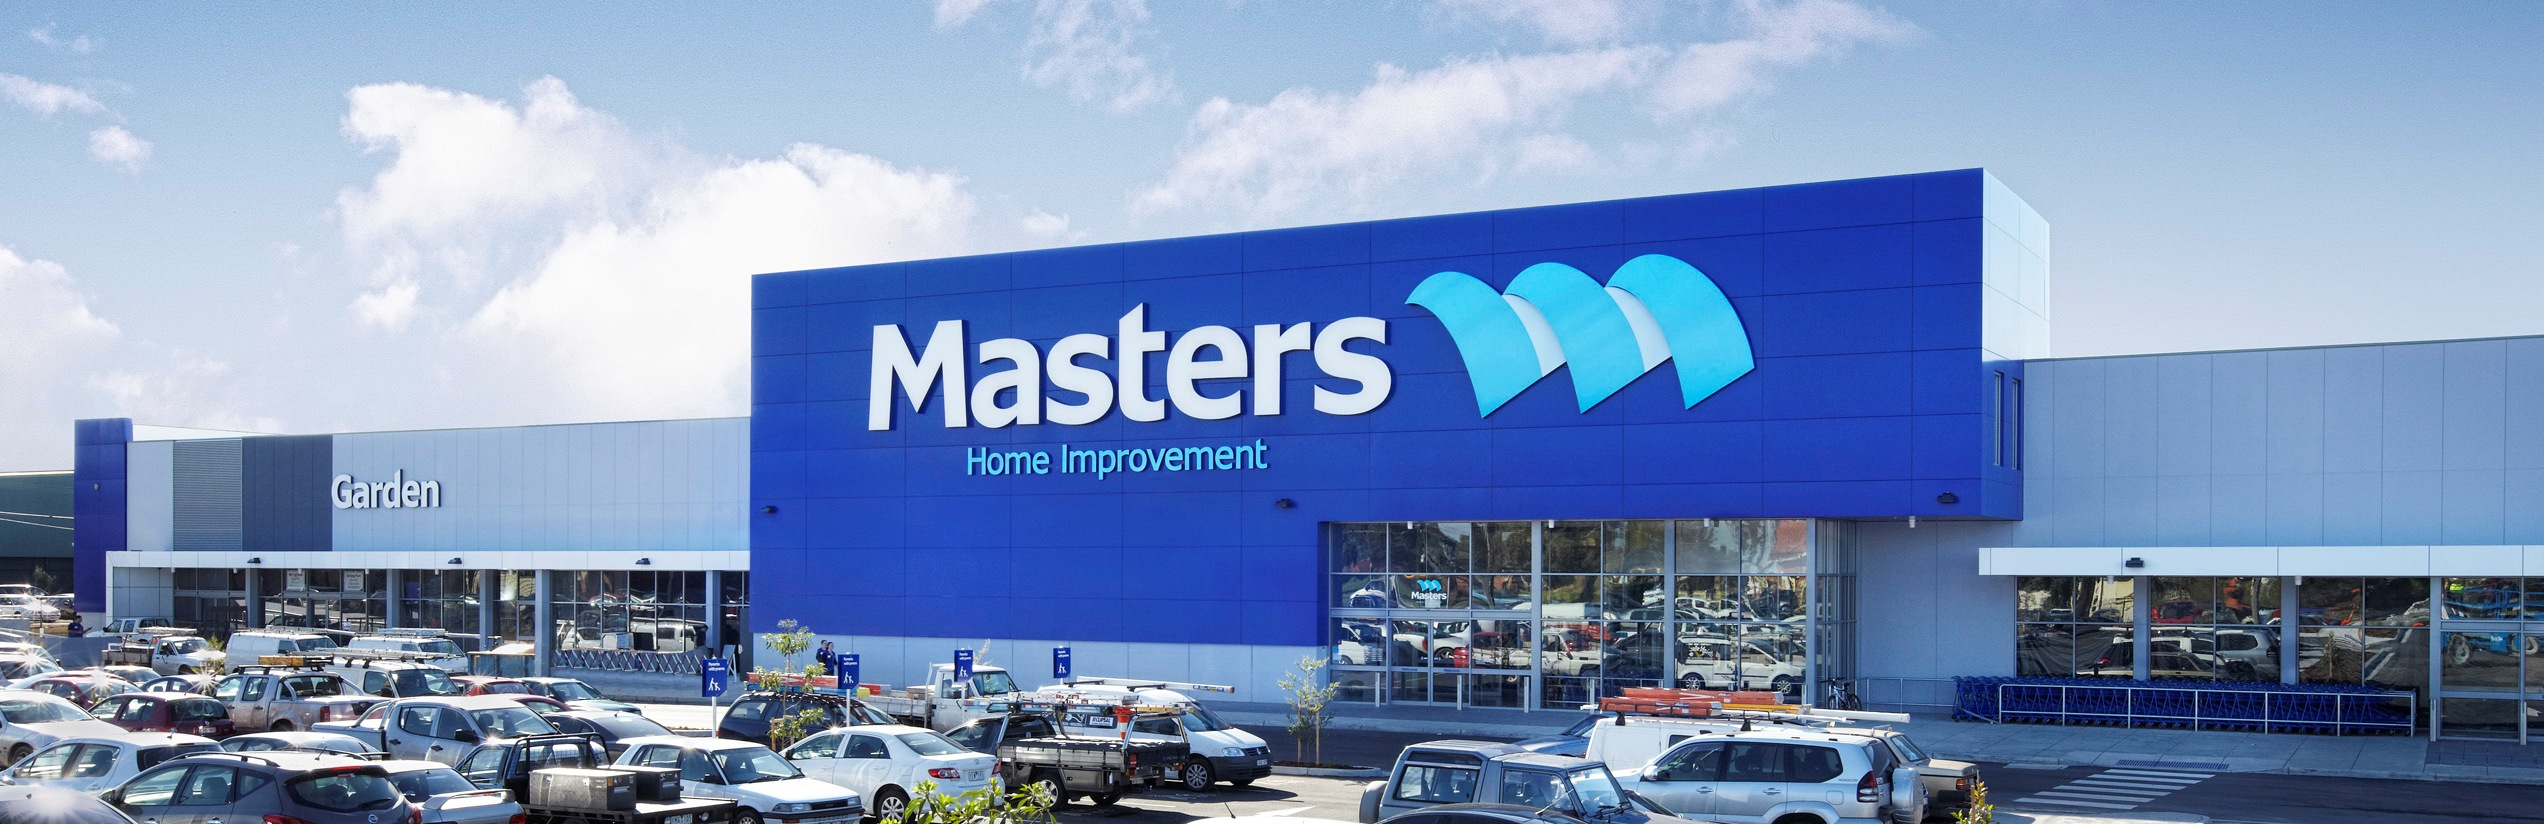 Masters home improvement for Master home